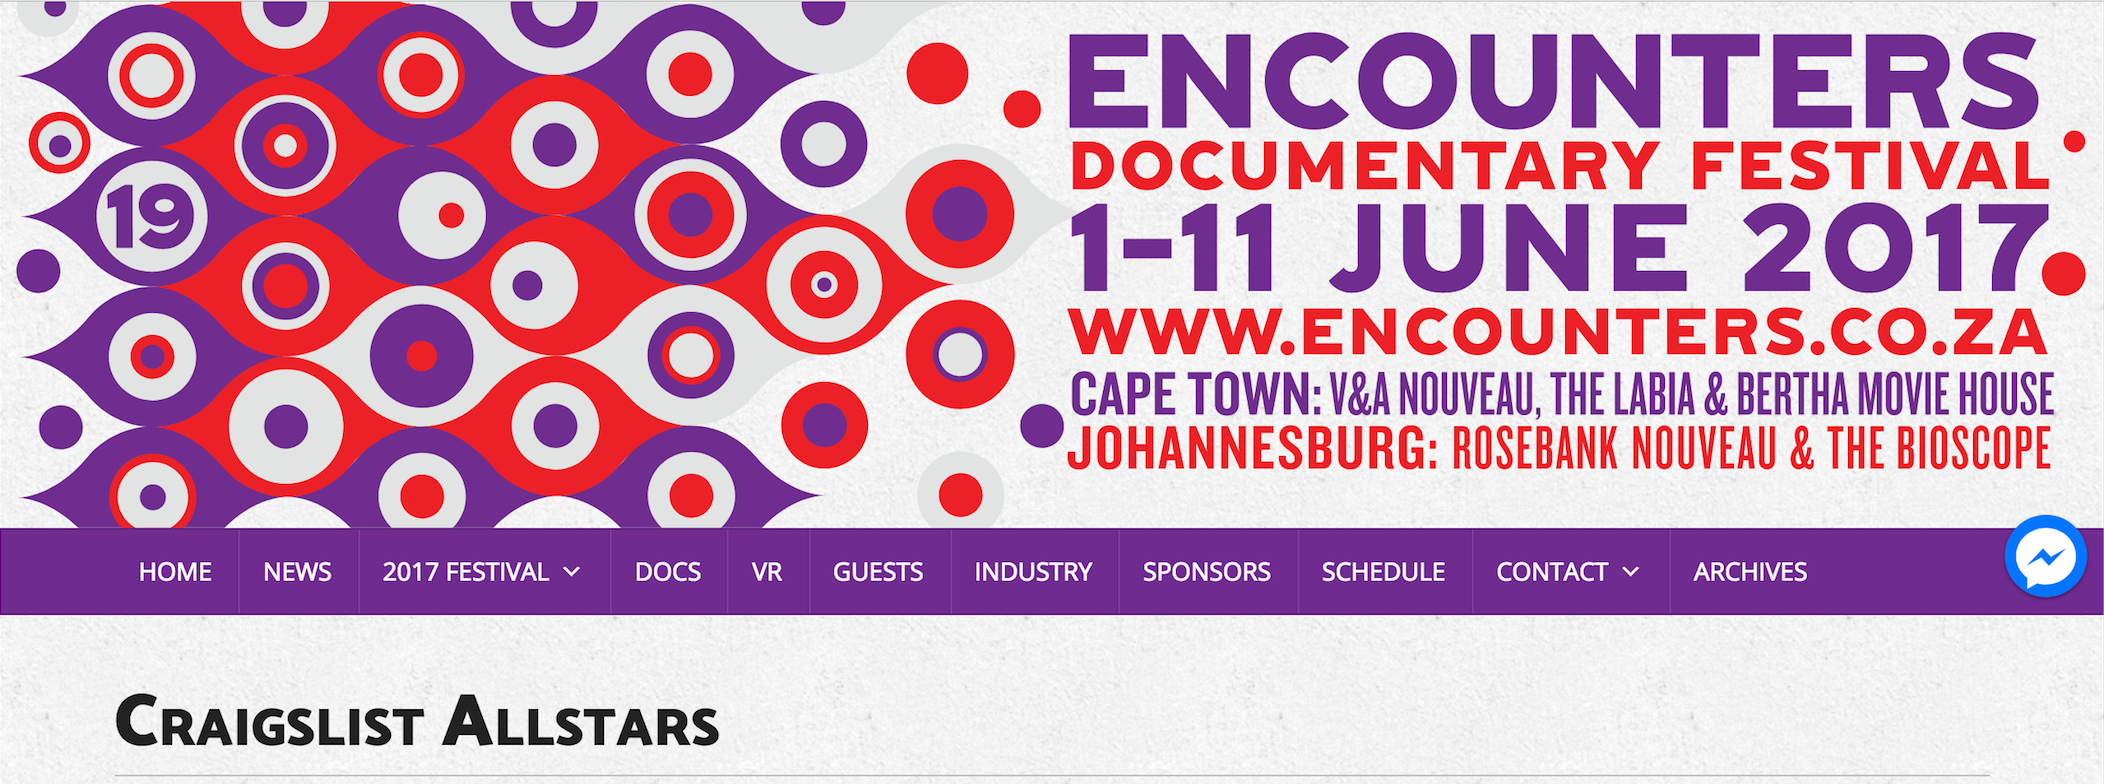 Craigslist Allstars at the Encounters South African Documentary film festival 2nd & 5th of June Cape Town + 9th Johannesburg